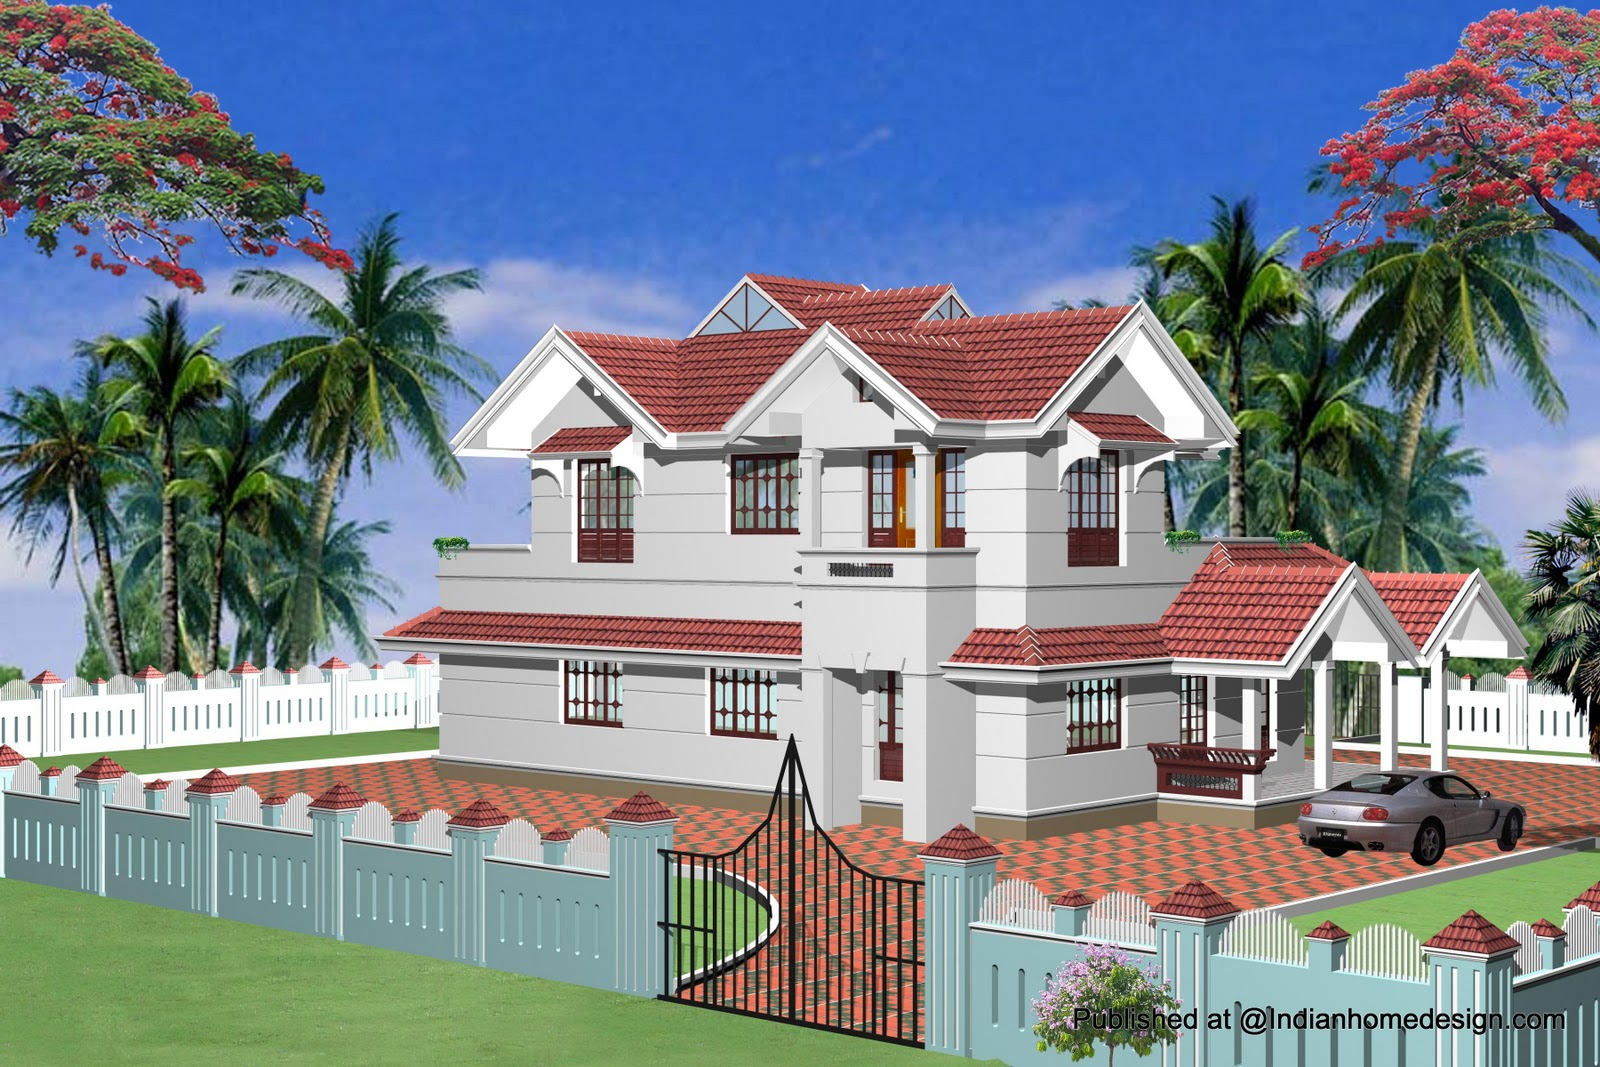 Architectural house plans india omahdesigns net for Free indian house designs